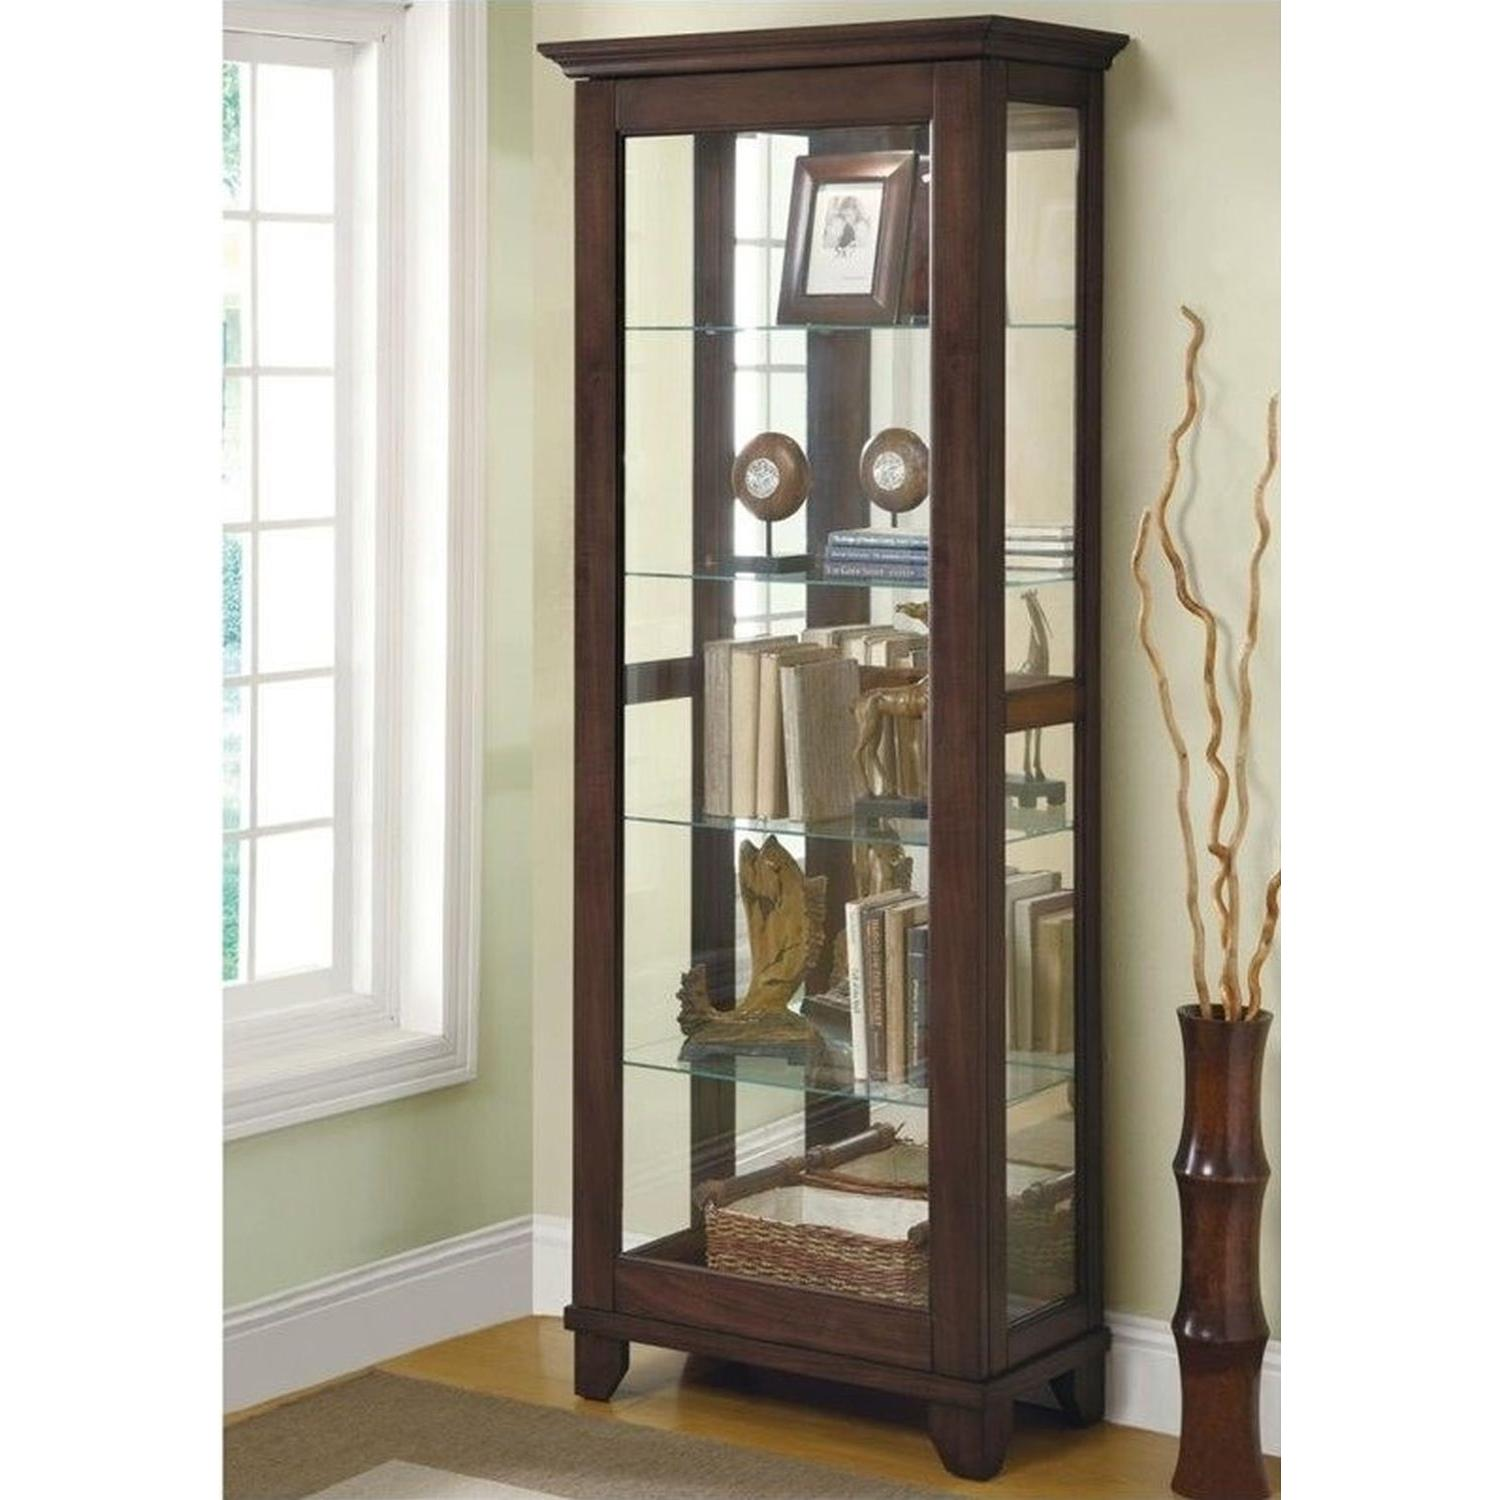 Curio Cabinet With Intricate Woodwork Carvings - image-5